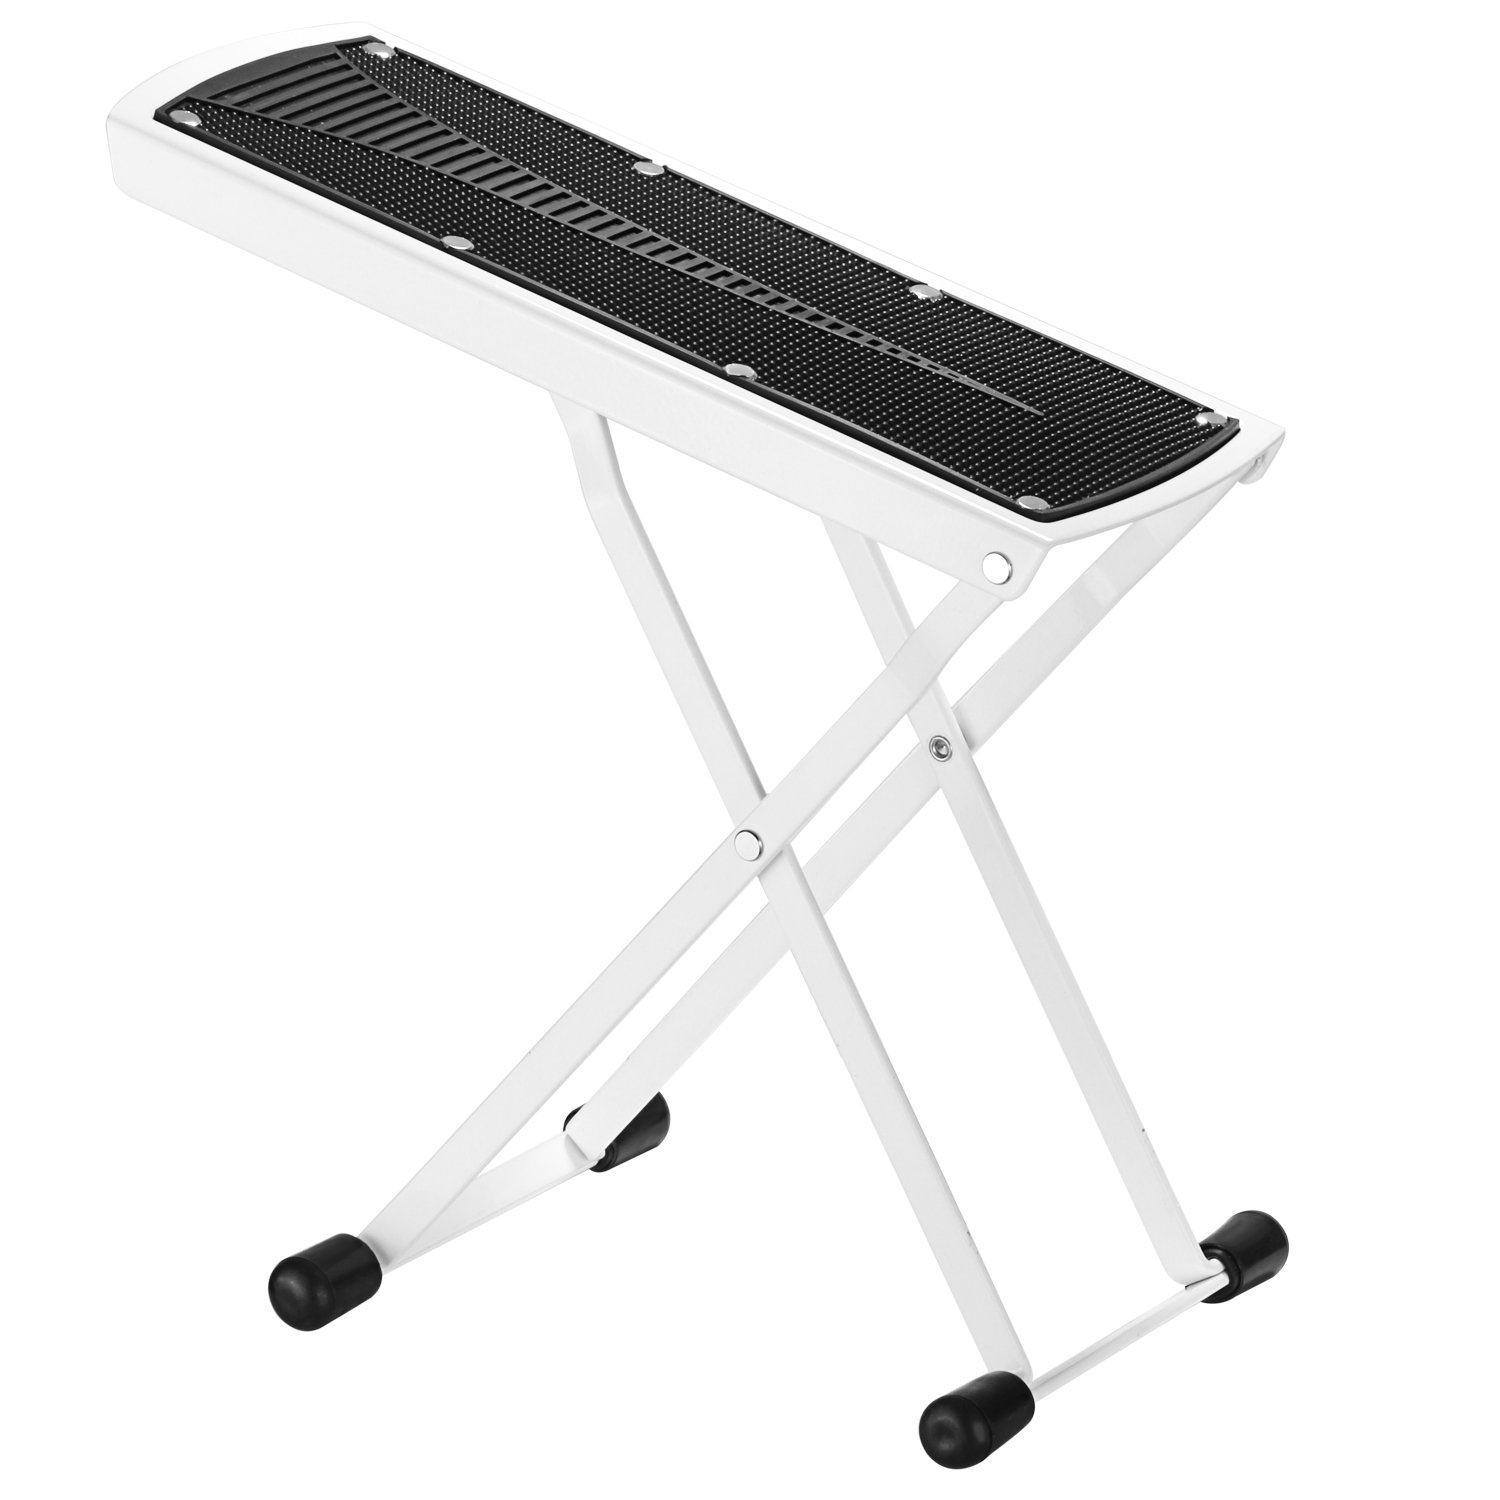 Neewer Extra Sturdy Guitar Foot Rest Made of Solid Iron, Provides Six Easily Adjusted Height Positions, Excellent Stability with Rubber End Caps and Non-slip Rubber Pad